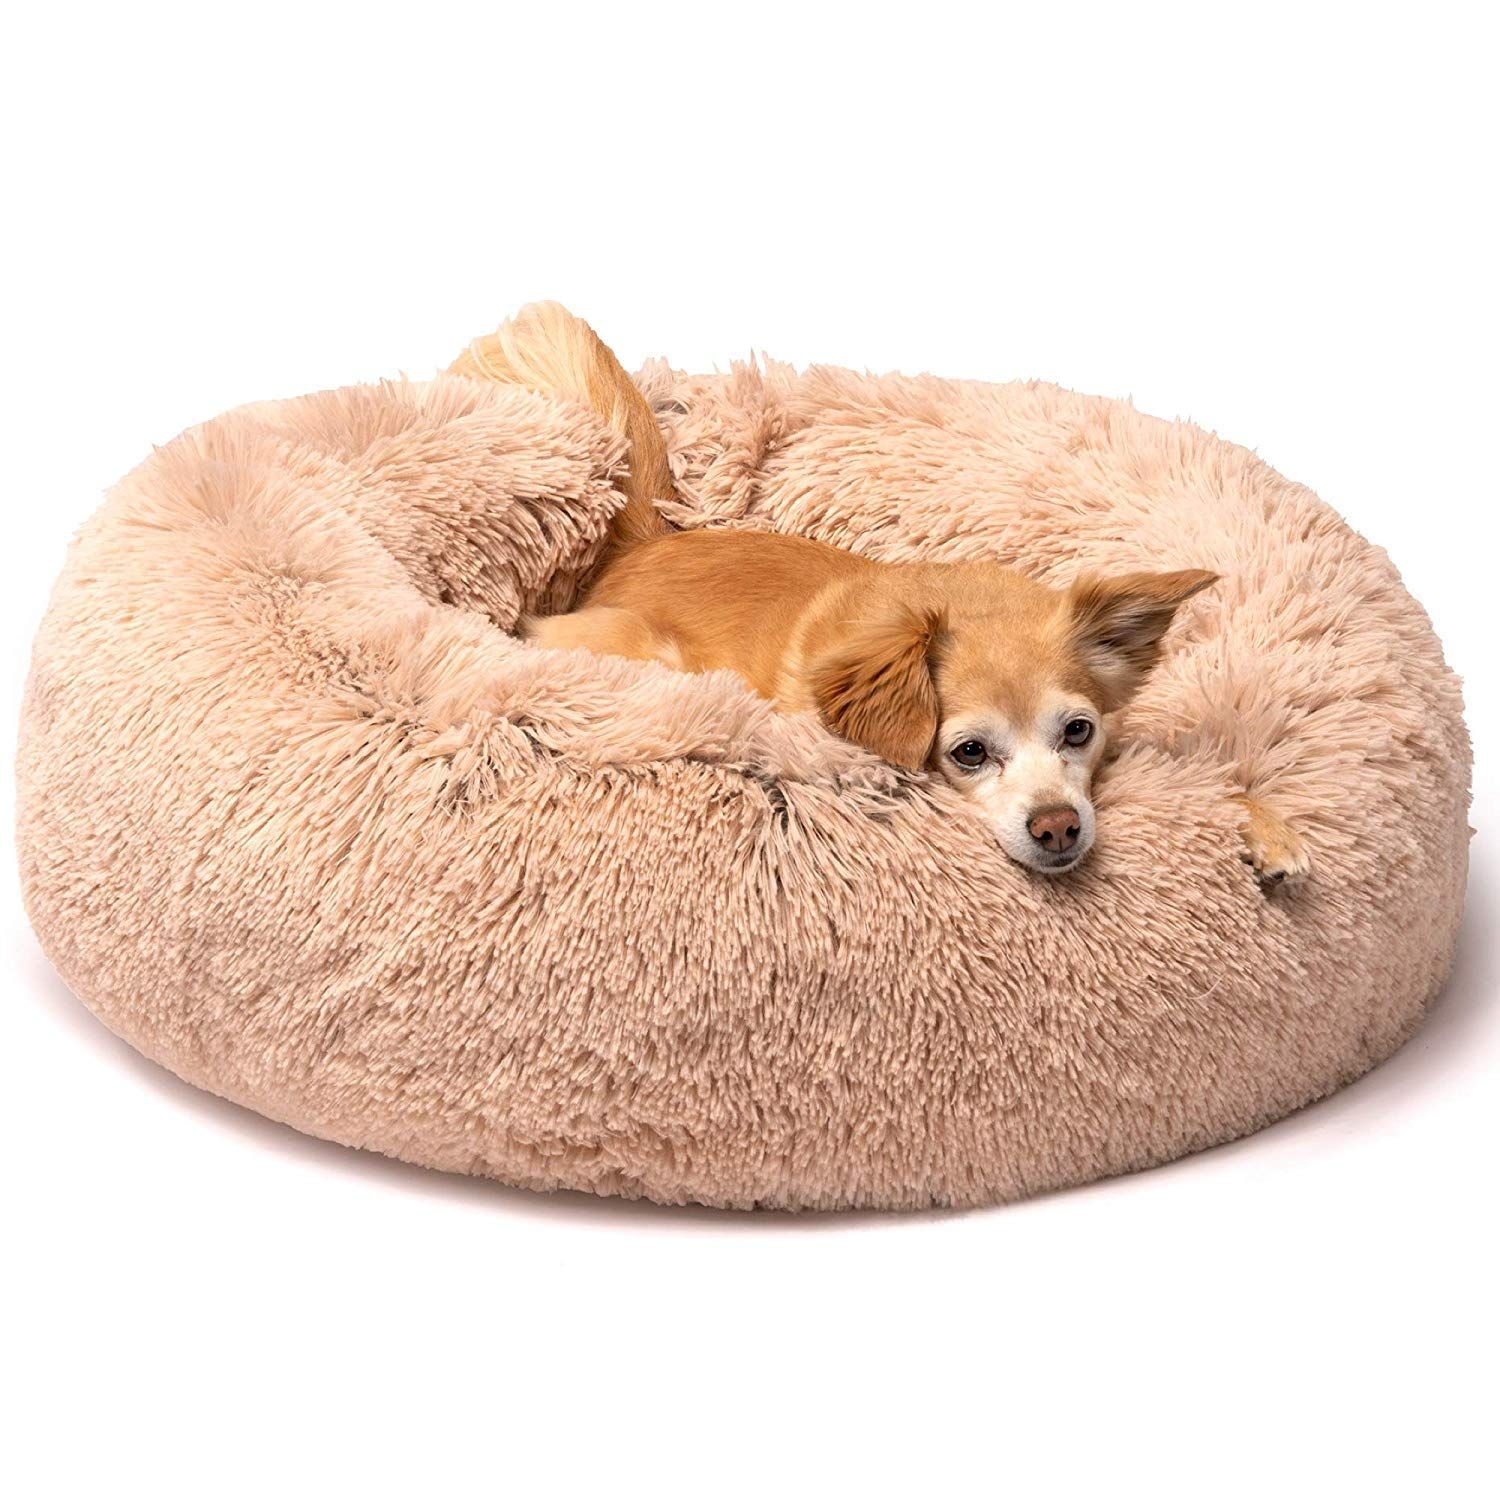 Friends Forever Donut Cat Bed Faux Fur Dog Beds For Medium Small Dogs Self Warming Indoor Round Pill In 2020 Dog Beds For Small Dogs Dog Bed Large Faux Fur Dog Beds